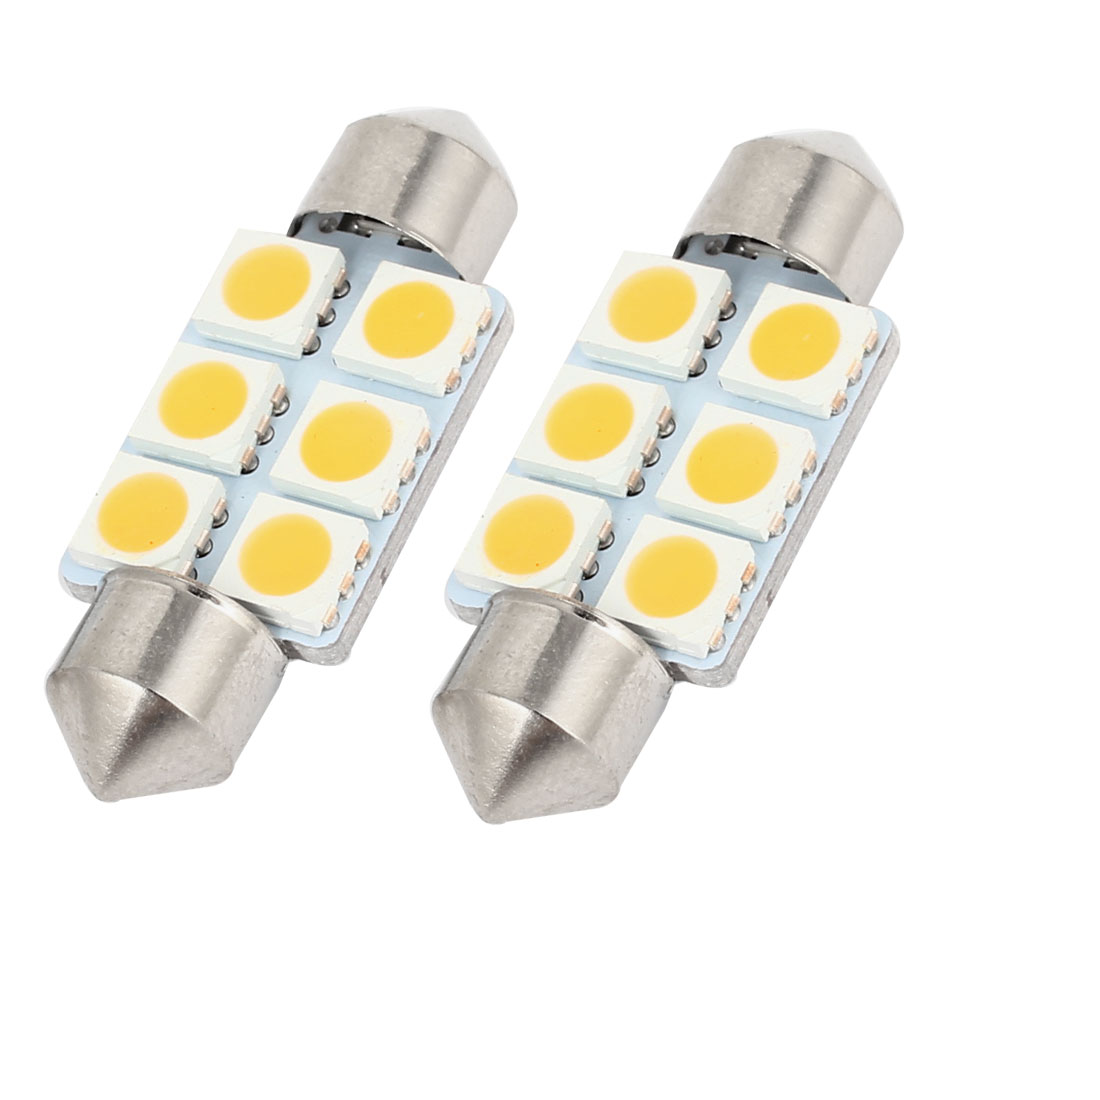 "2PCS 36mm 1.5"" 6-SMD 5050 Warm White LED Festoon Dome Light DE3425 6418 Internal"